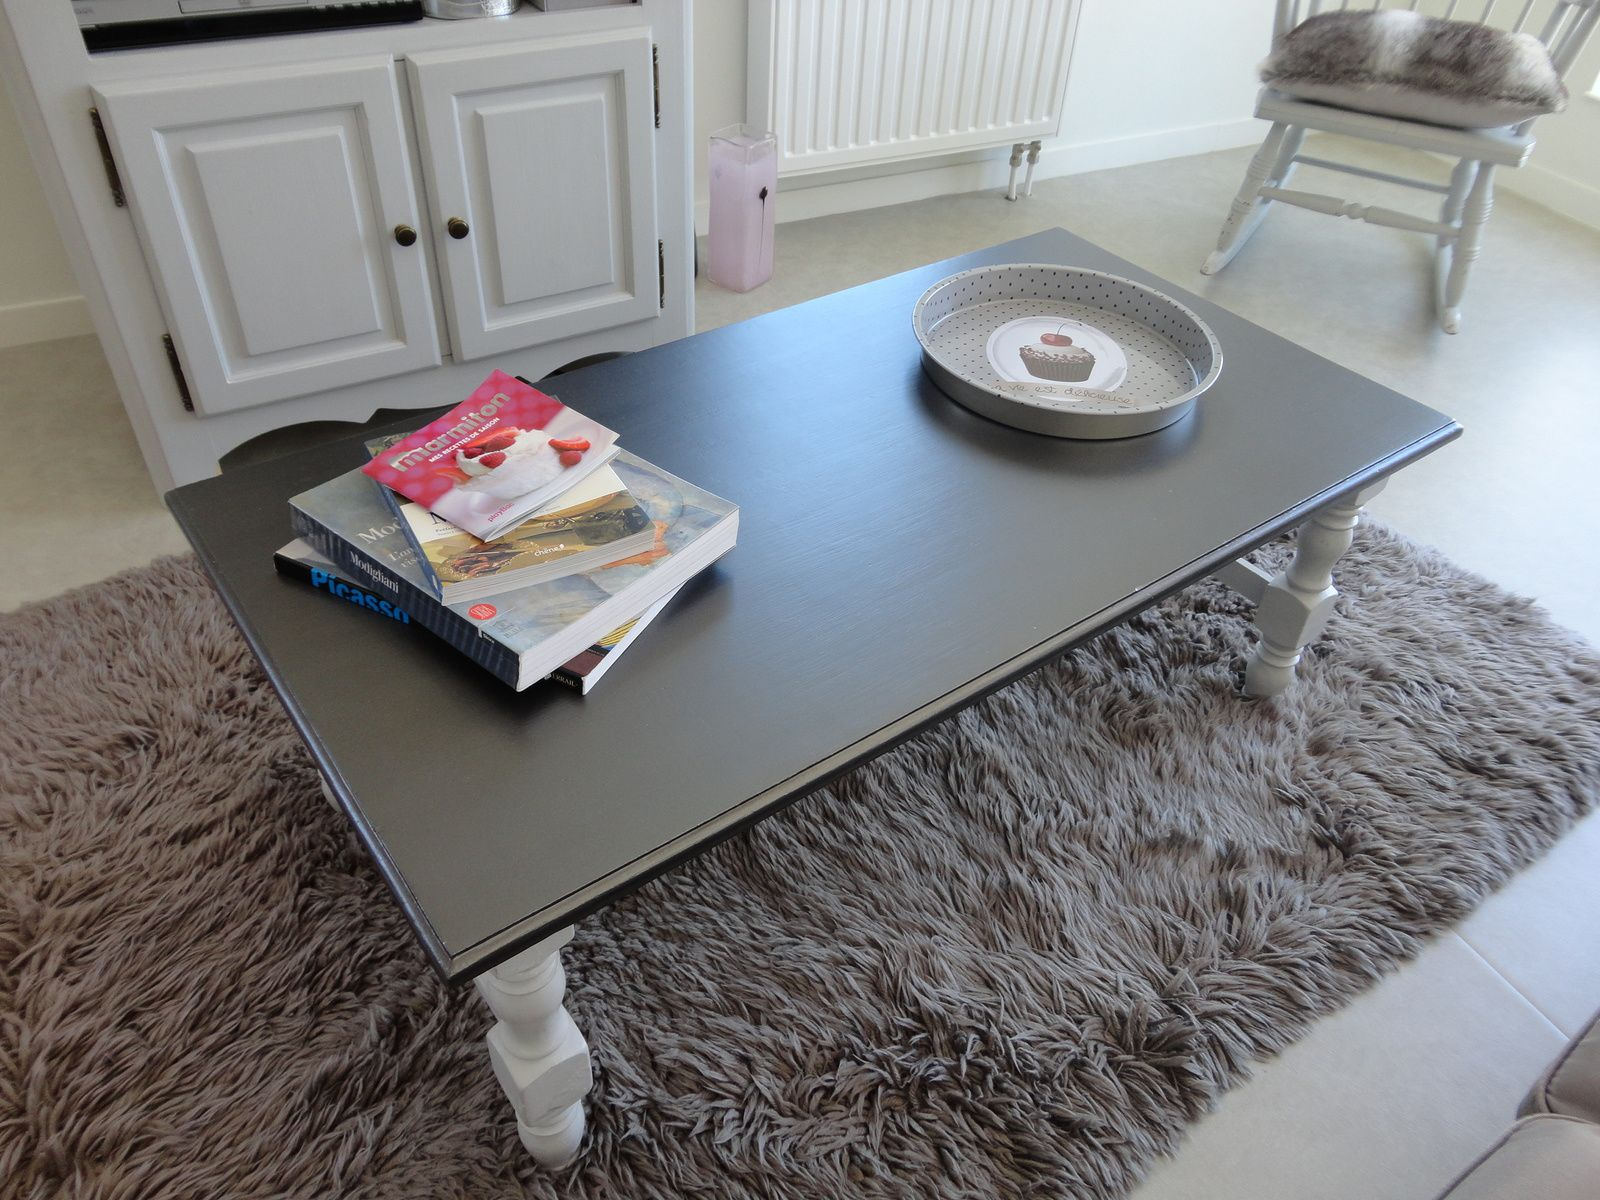 Table basse et meuble t l relook s peinture design touch for Table basse tele